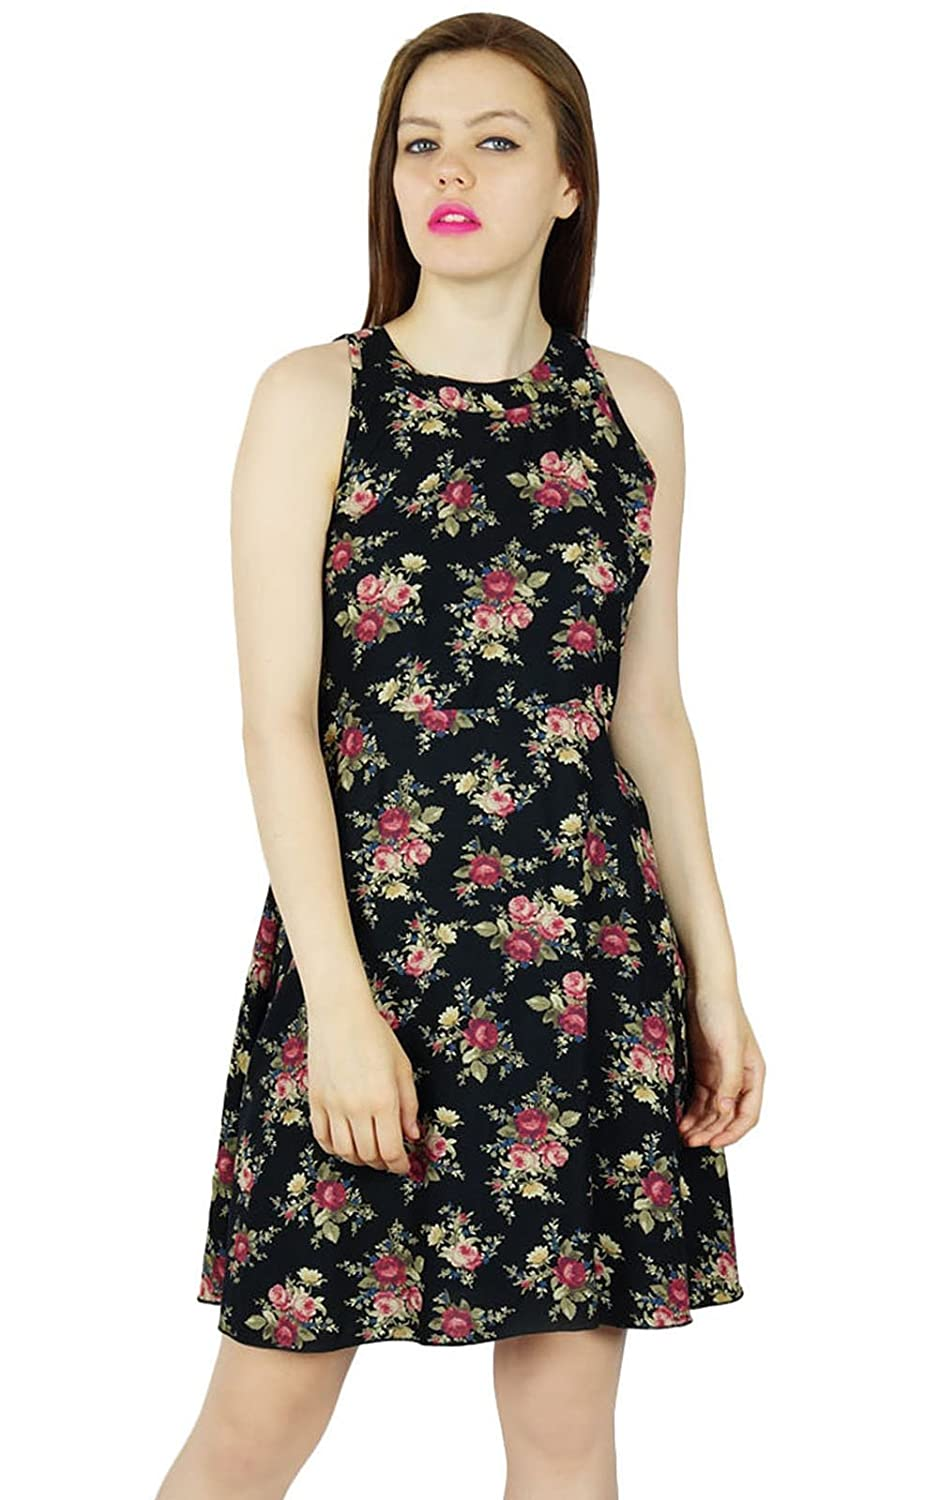 Bimba Women Black Floral Rayon Dress Sleeveless Classic Chic Summer Custom Clothing